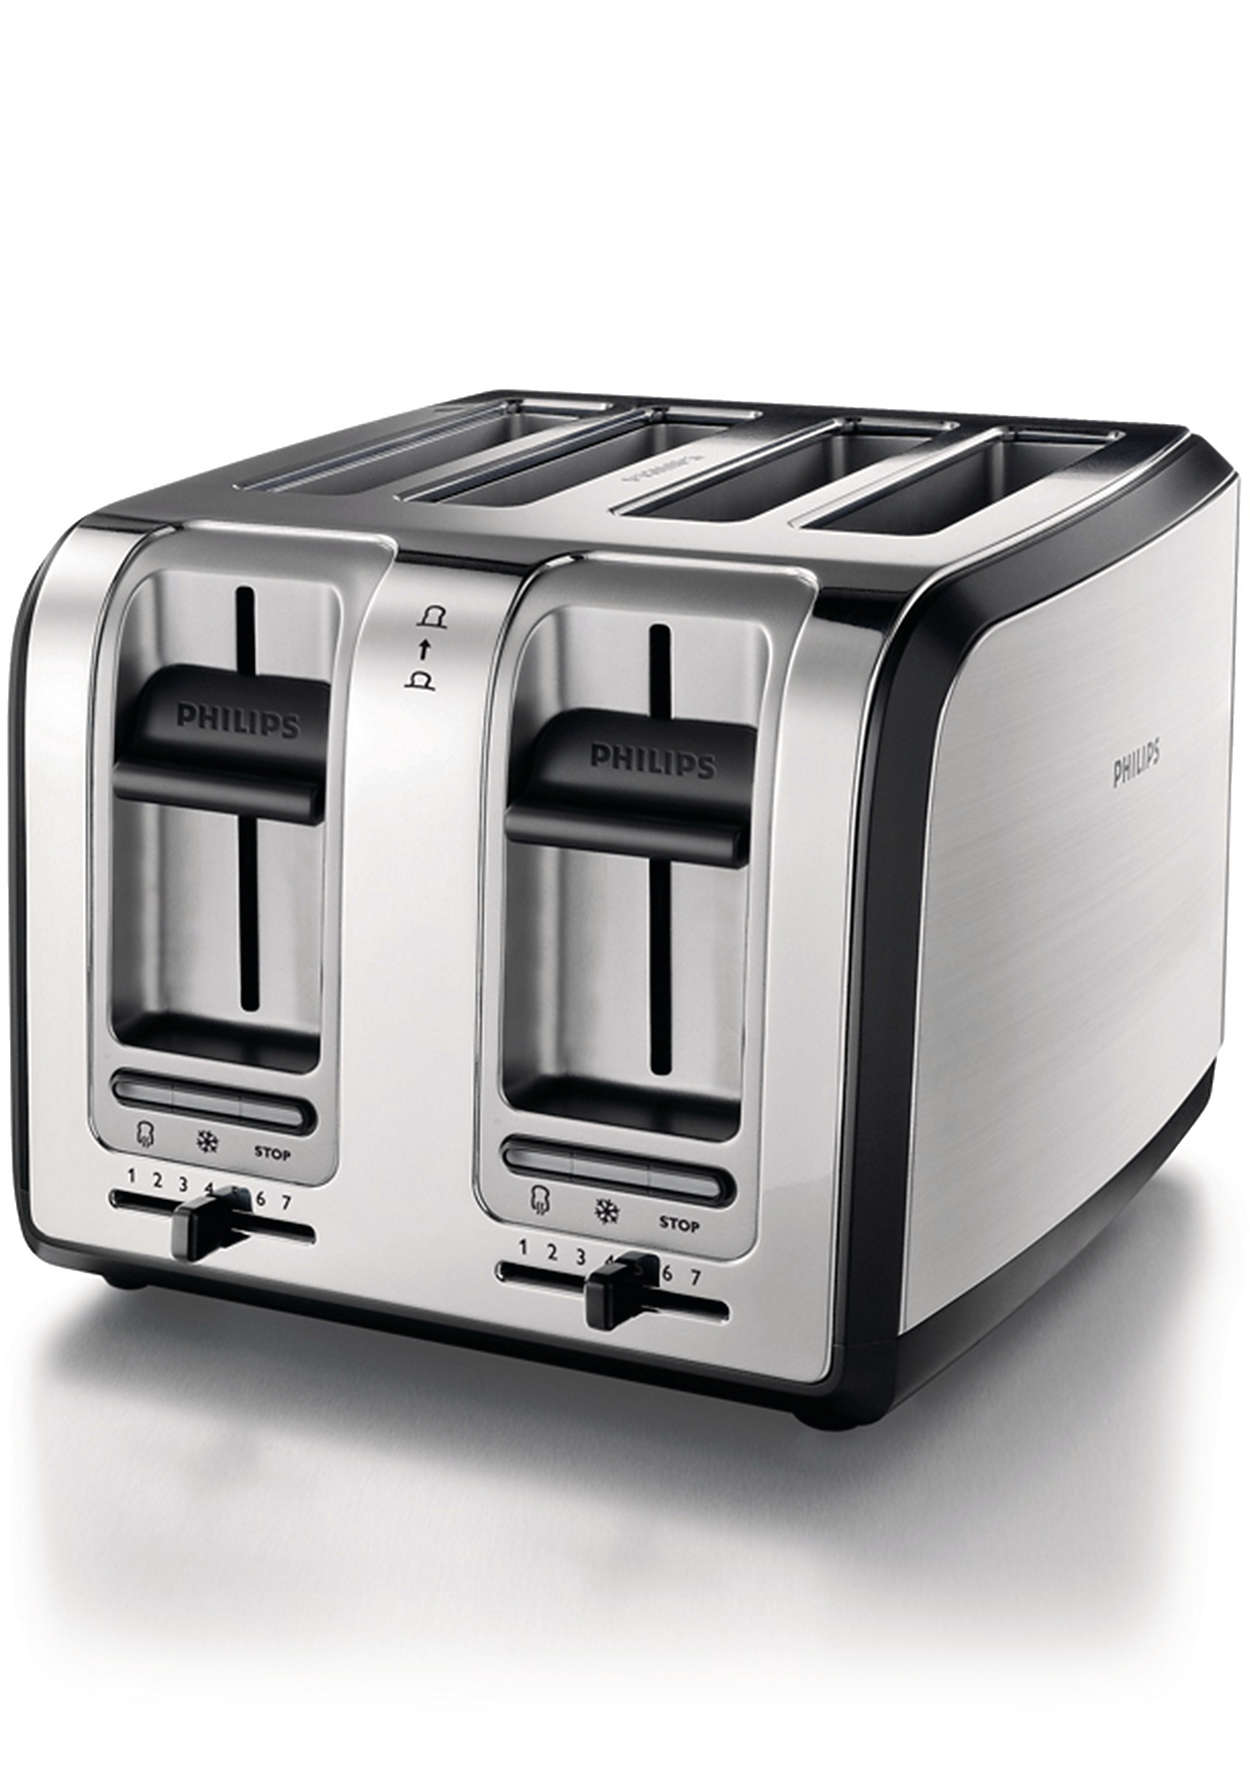 kitchenoriginals kitchenware toaster co wayfair kalorik tableware uk pdp reviews oven